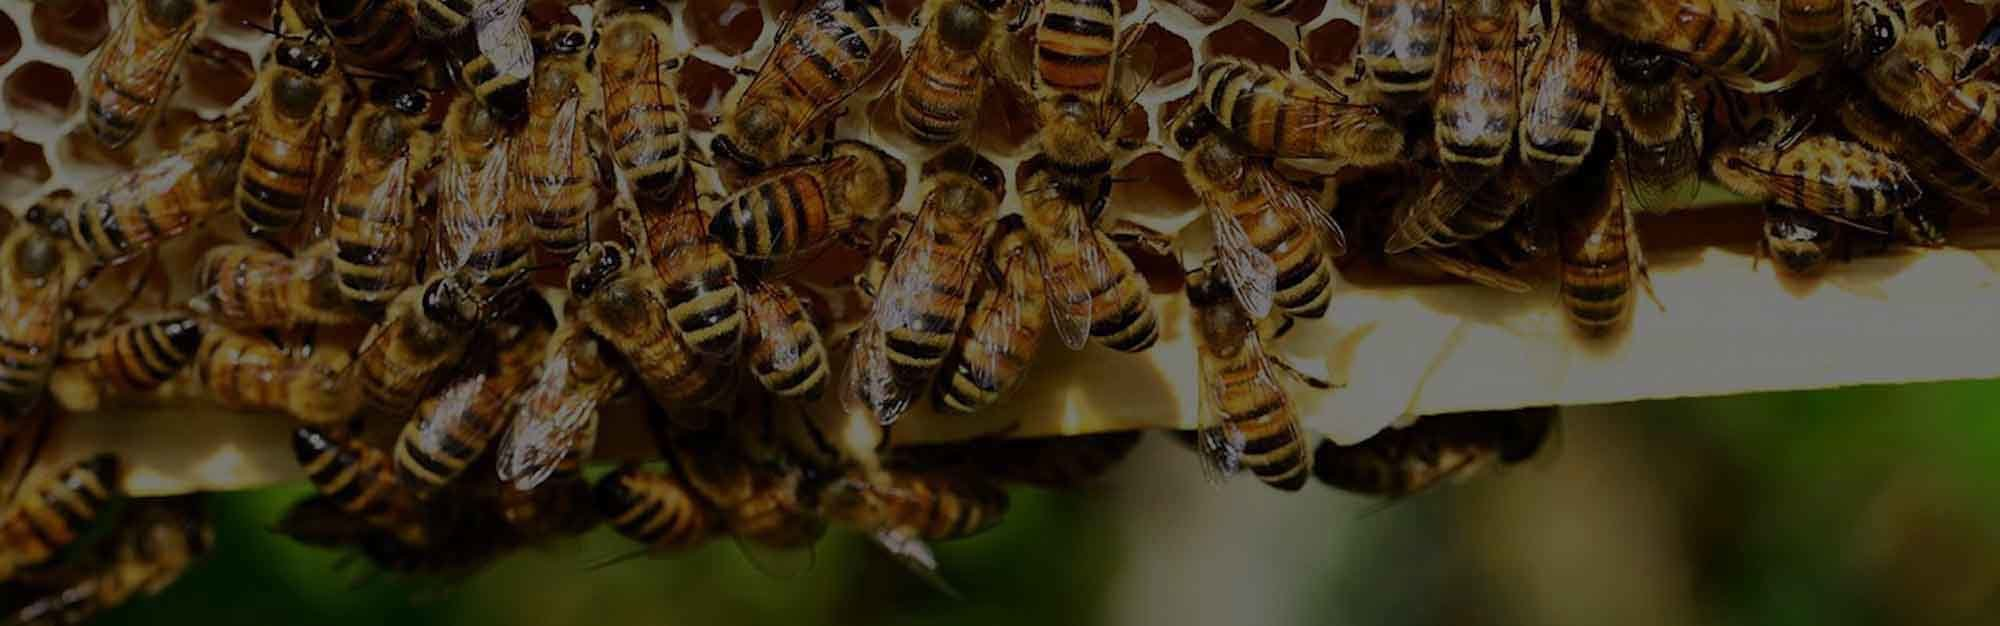 DELPA-Bee-Removal-Experts-in-Houston-Texas-v002-3